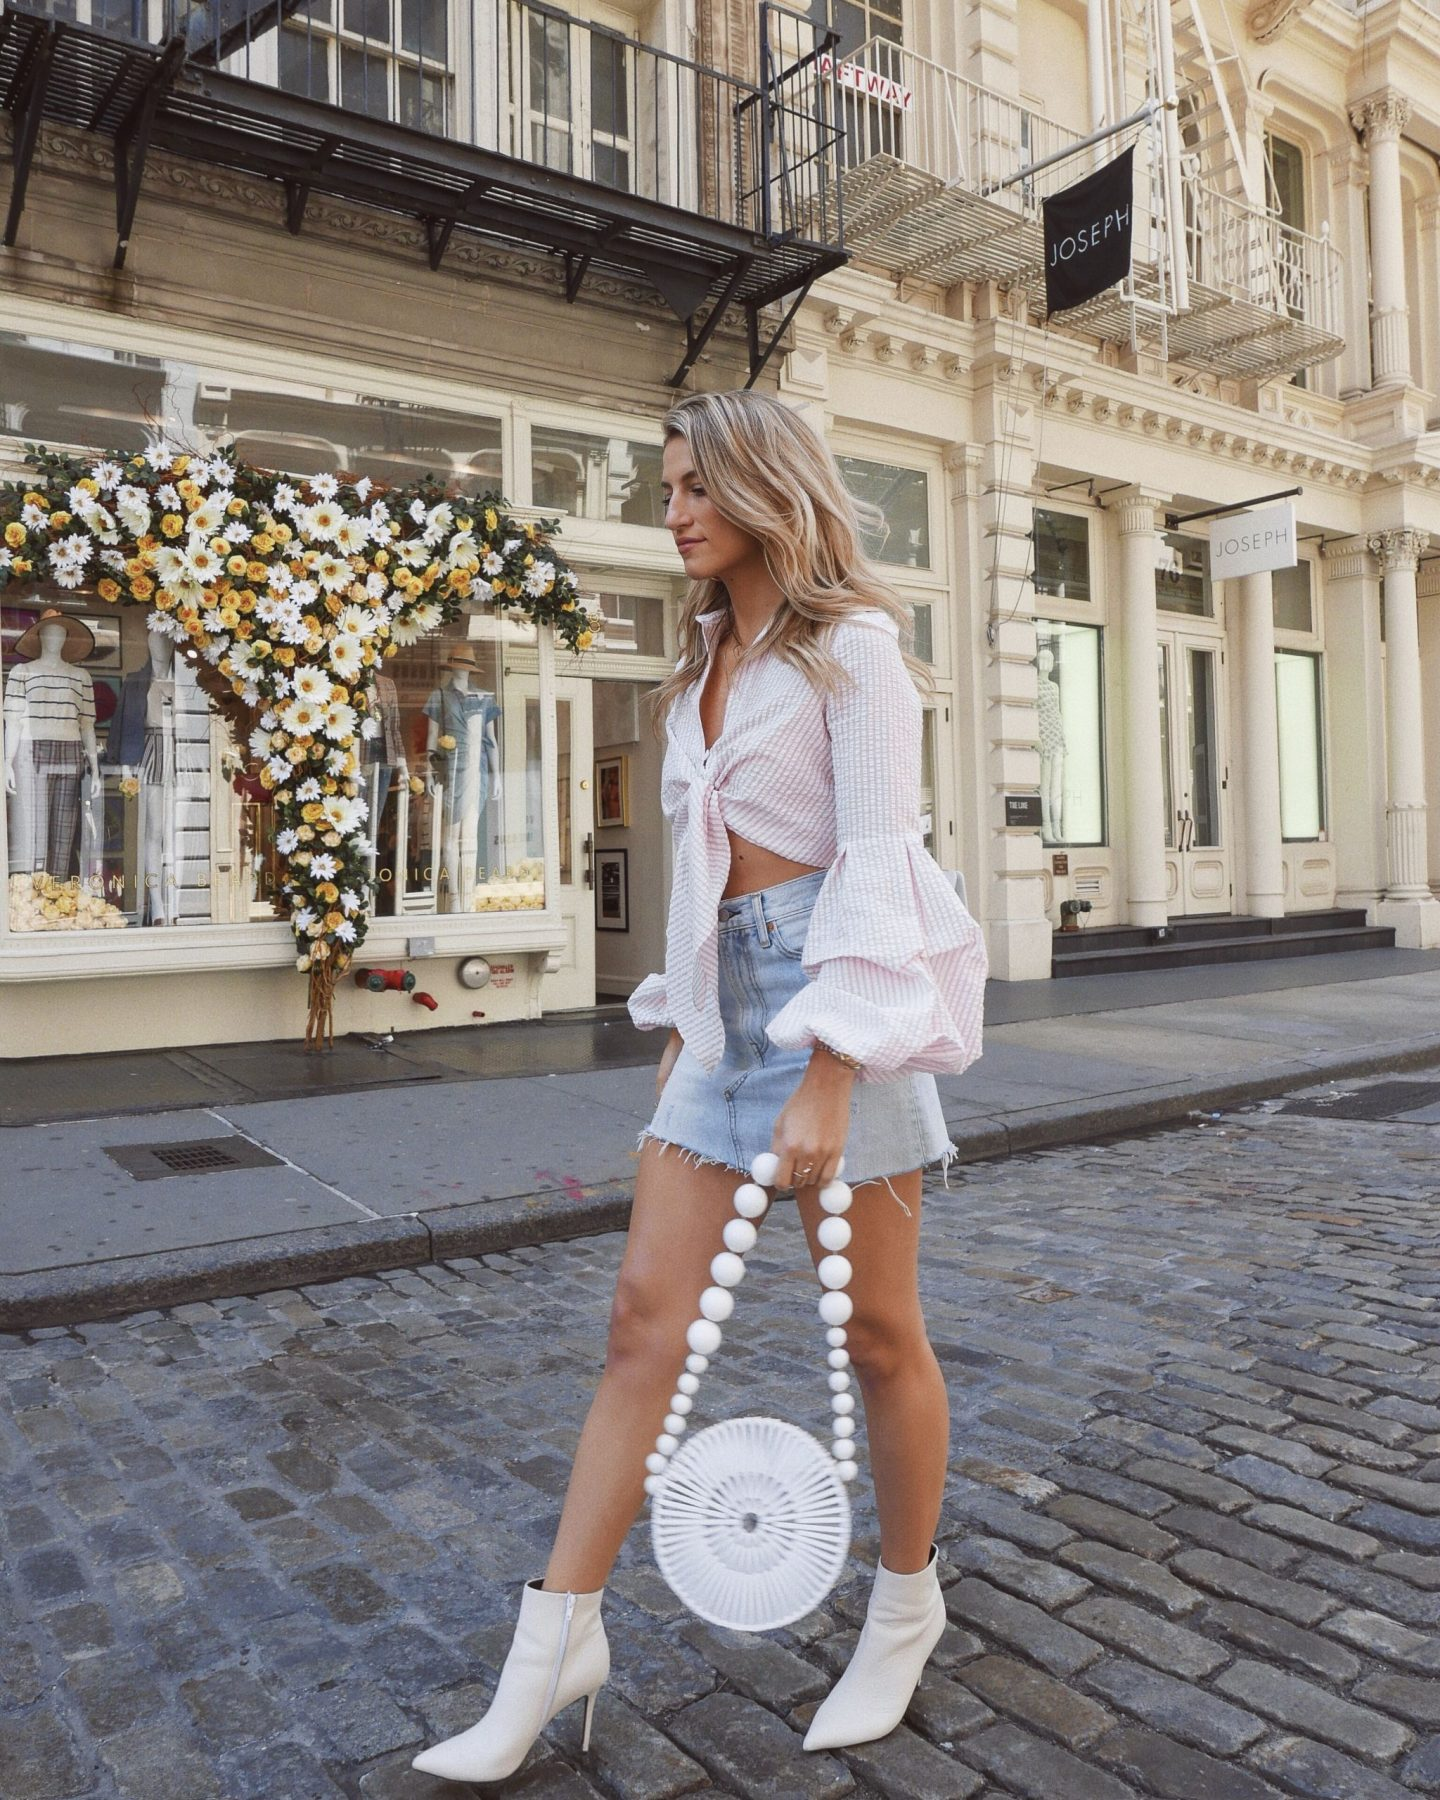 Cassandra DiMicco, Cass DiMicco, Dressed For Dreams, NYC, New York City, New York, Street Style NYC, Street Style 2018, NYC Street Style Street Style Outfits, 2018 Trends, NYC Fashion Blogger, soho, white booties, cult Gaia, cult Gaia bag, petersyn top, striped tie front top, ruffle sleeves, Levis, denim skirt, Levis denim skirt